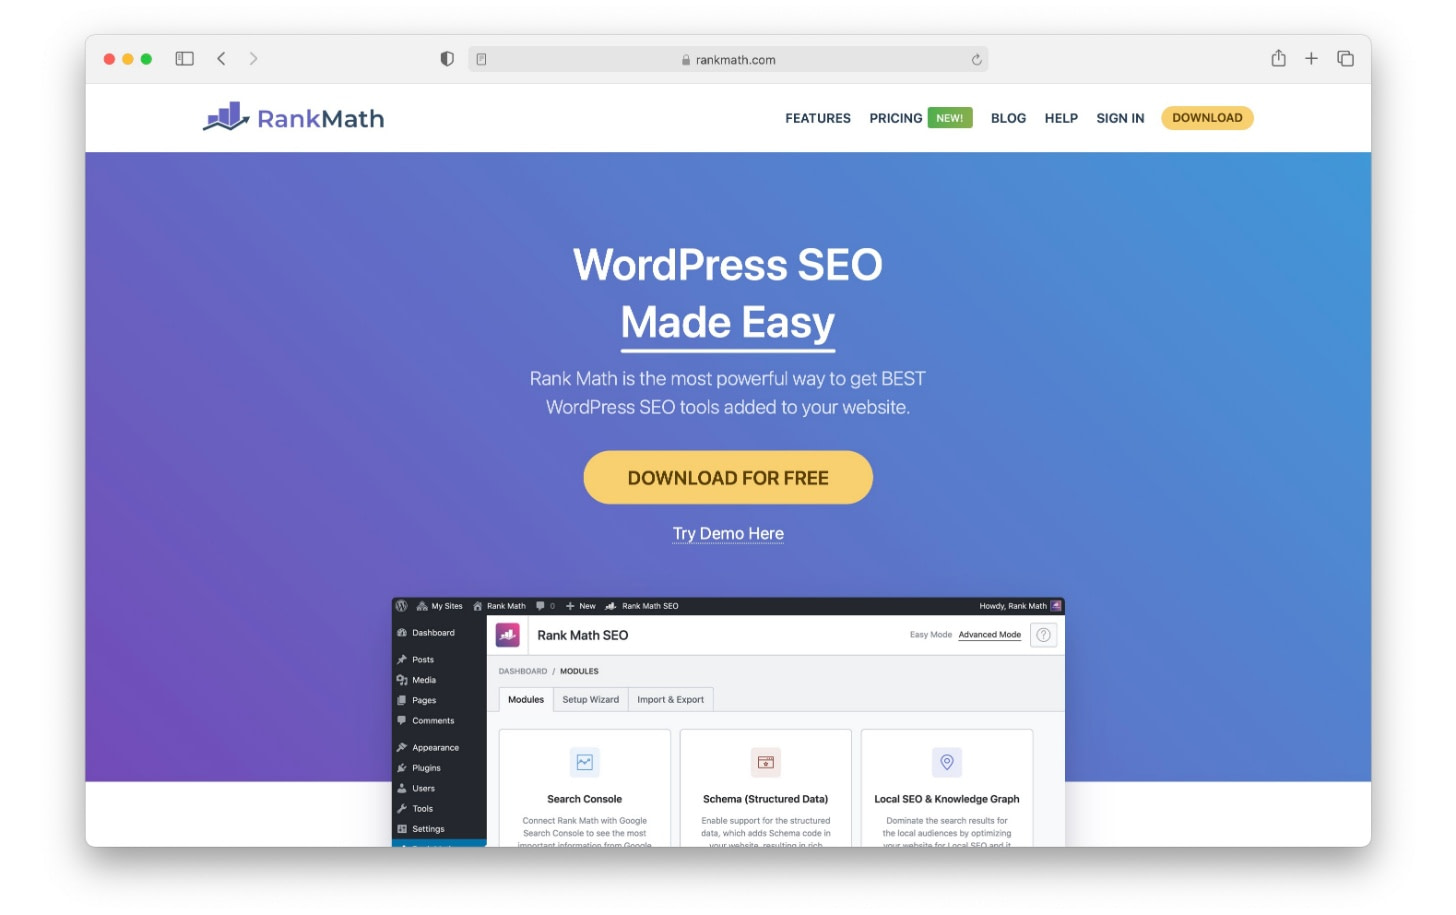 SEO tools like Rank Math have a variety of features to help WordPress SEO